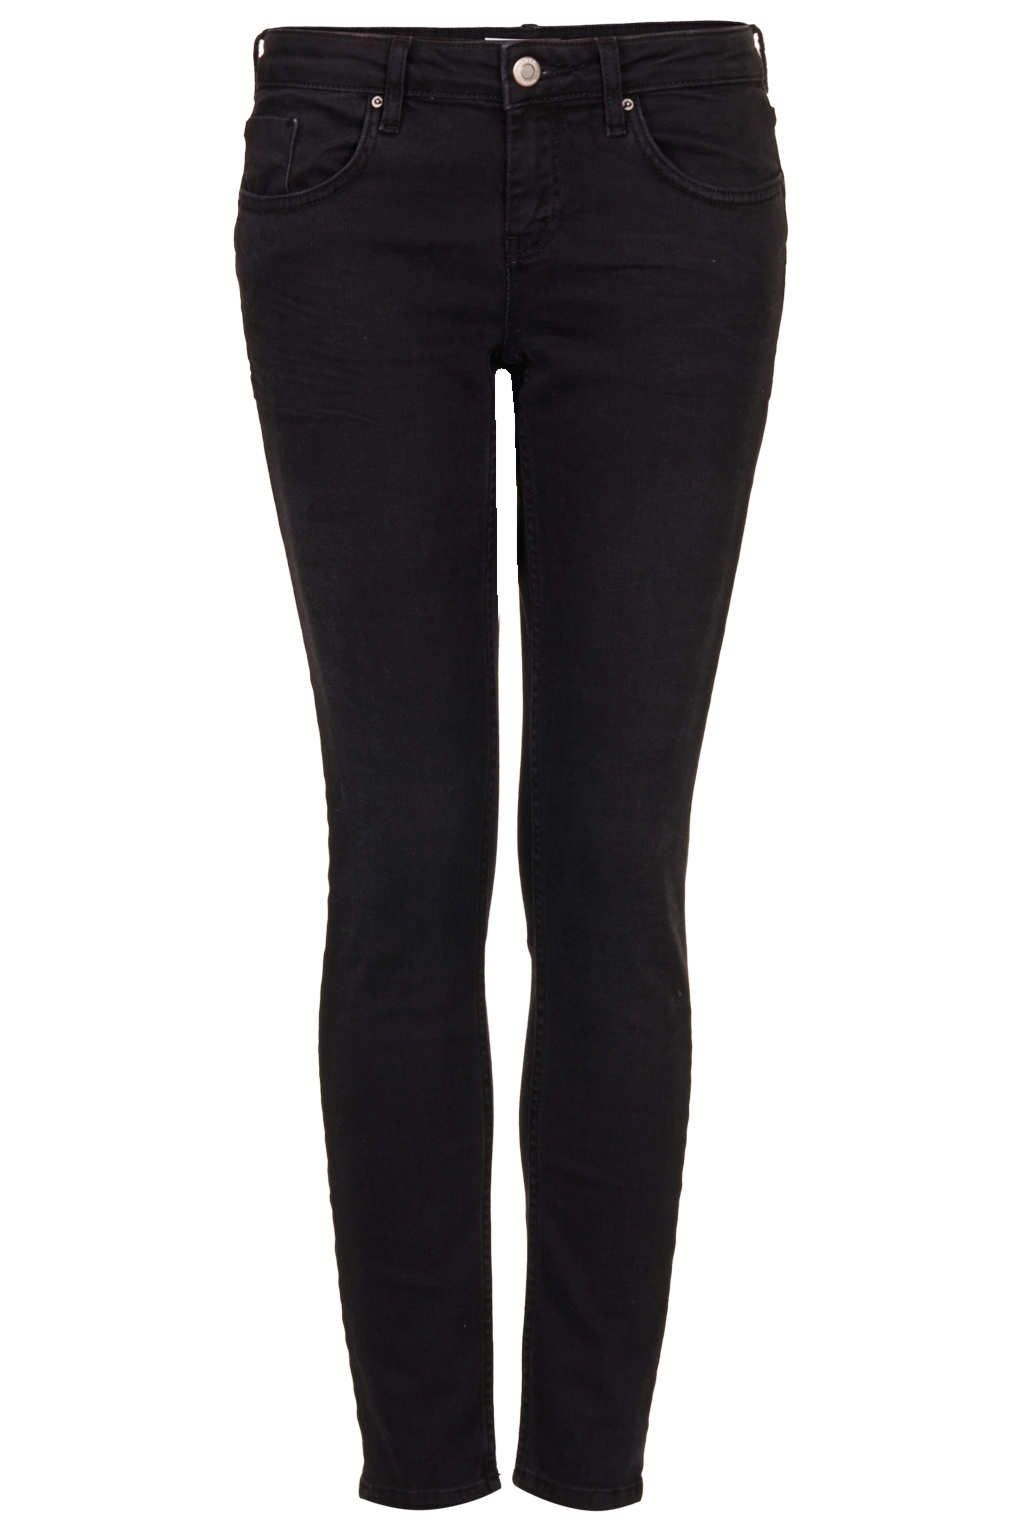 Collection Black Skinny Jeans Women Pictures - Reikian